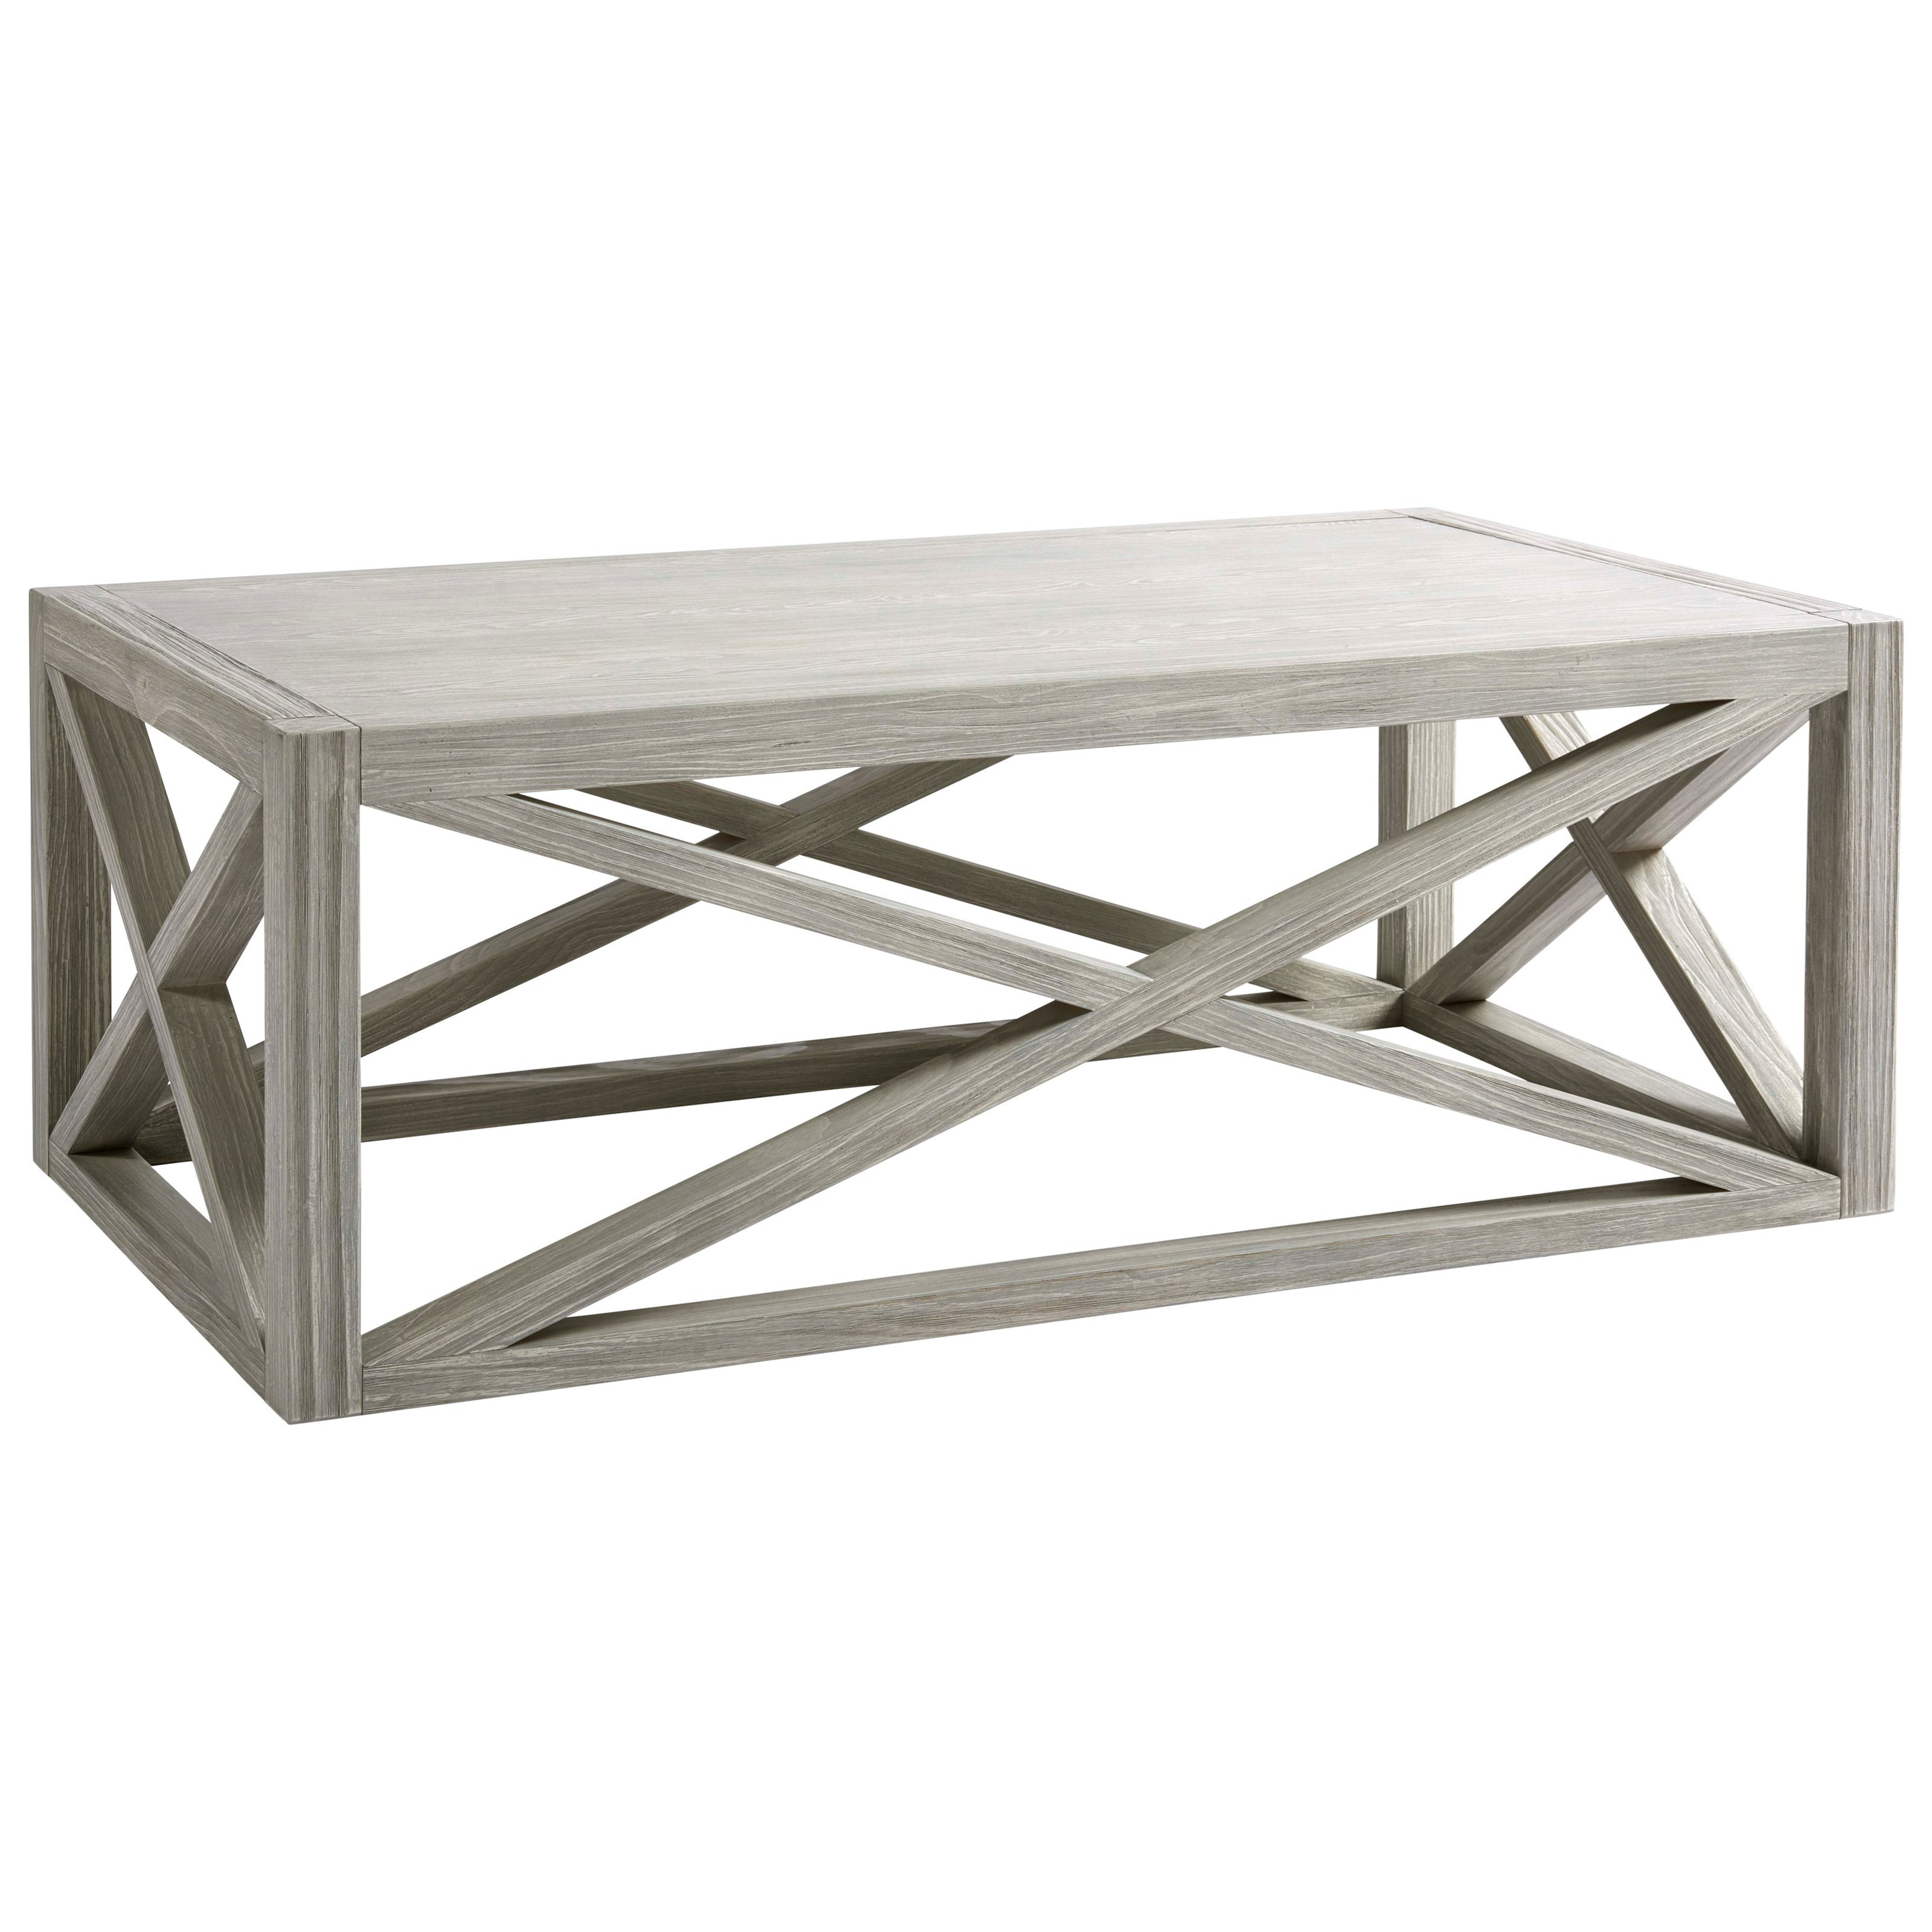 Coastal Living Home - Escape Boardwalk Cocktail Table by Universal at Baer's Furniture